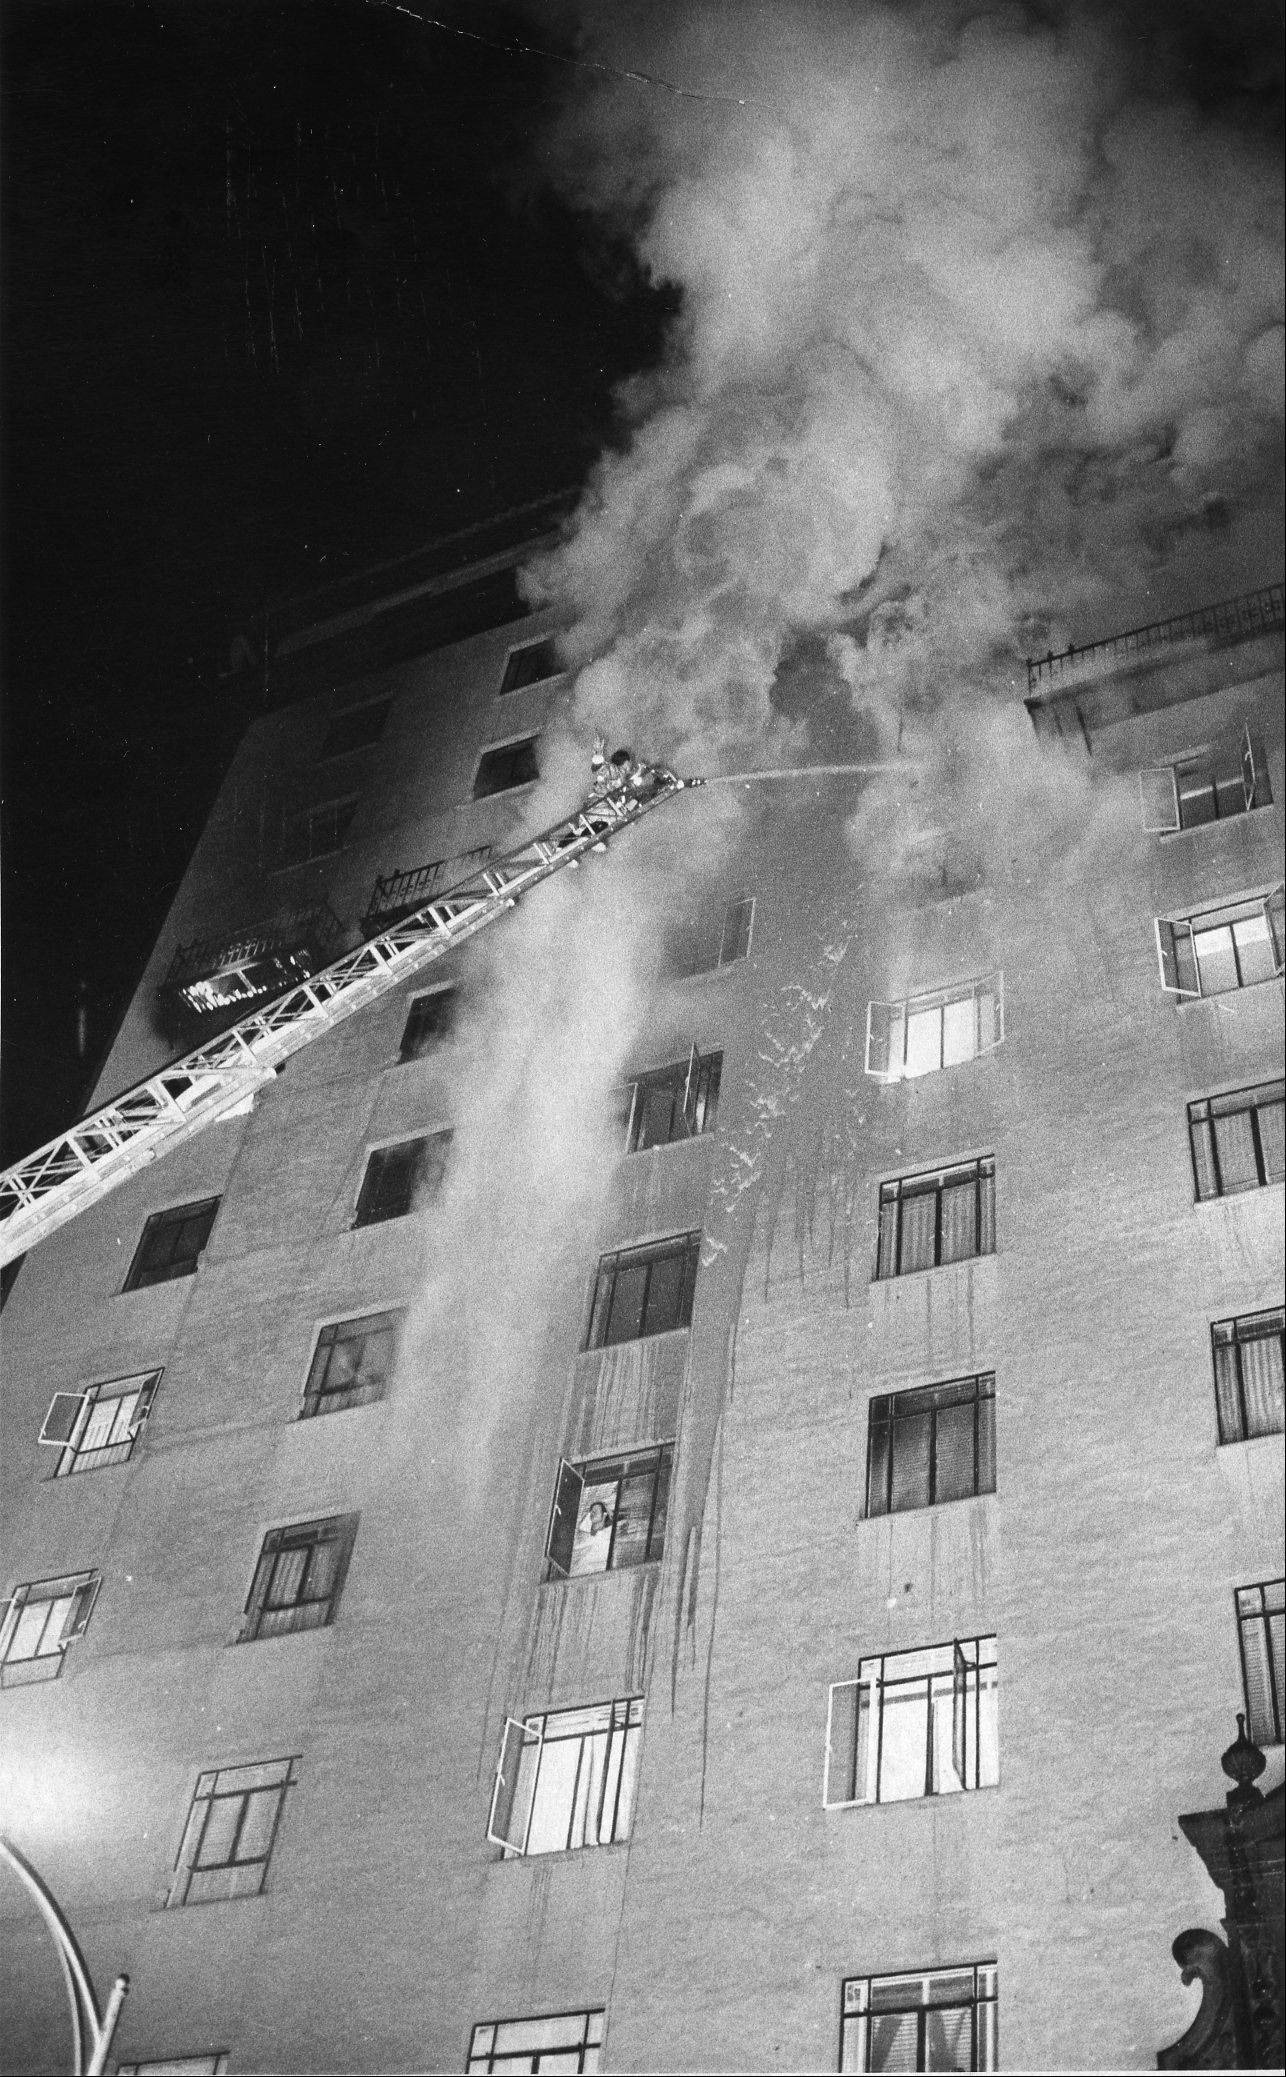 In a Dec. 20, 1970 photo Tucson, Ariz., firefighters apply a steady stream of water during the Pioneer International Hotel fire , that resulted in 29 deaths.